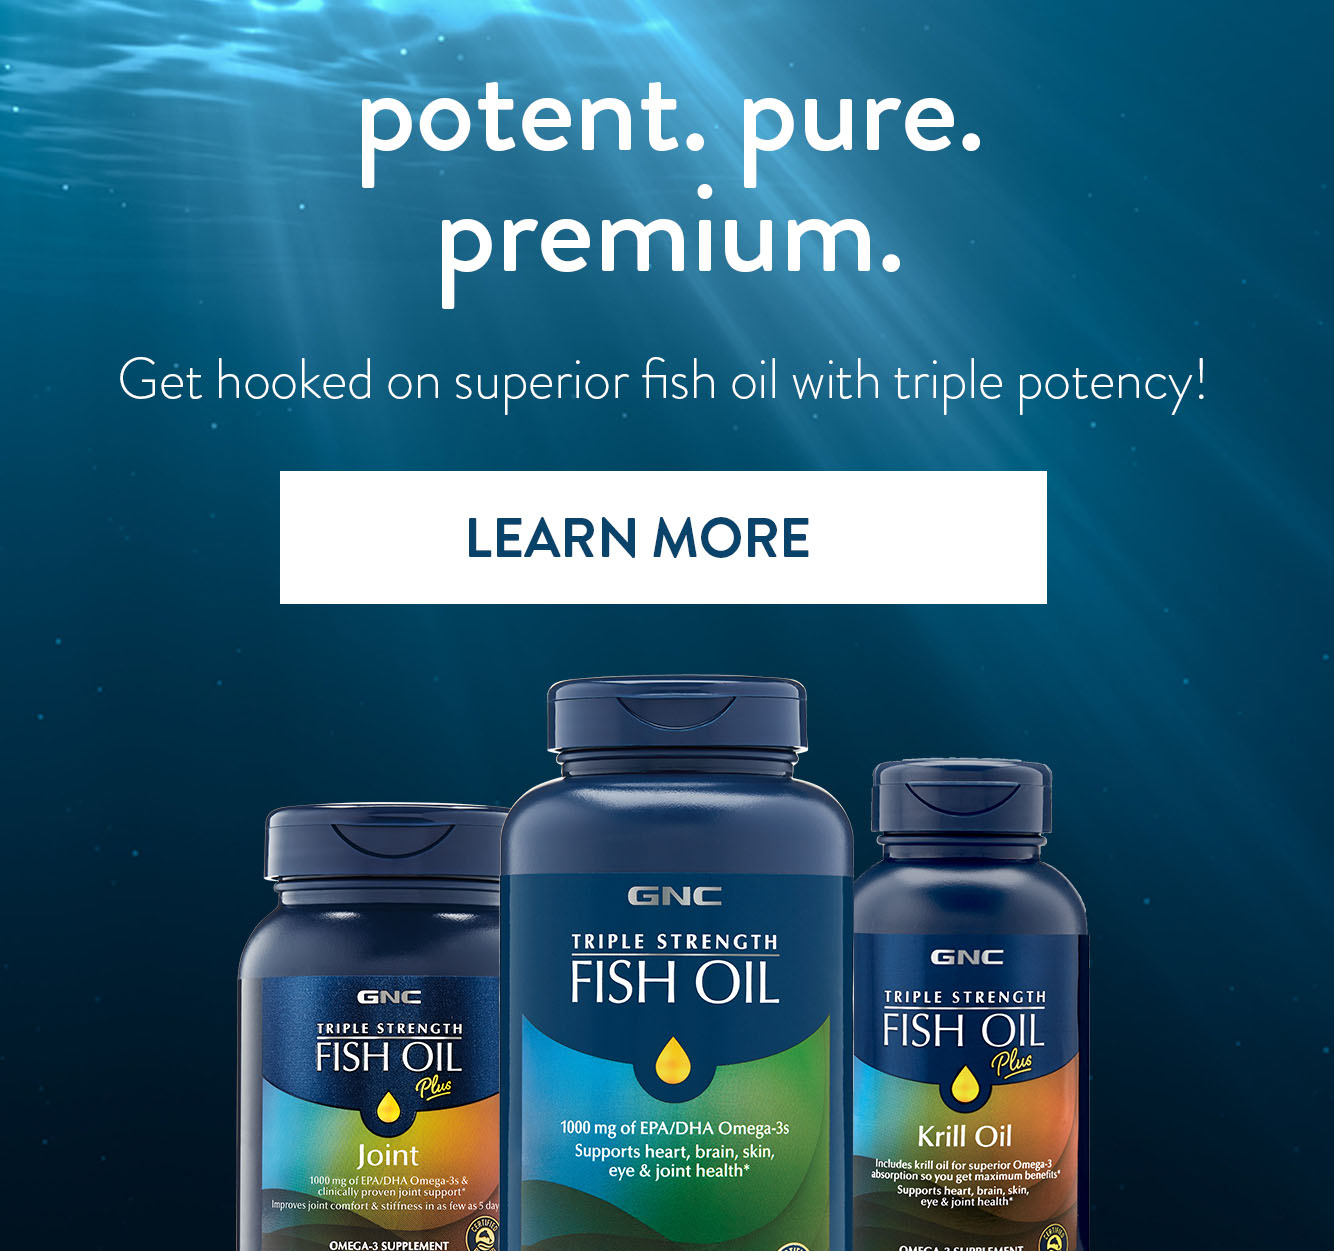 learn more about fish oil benefits